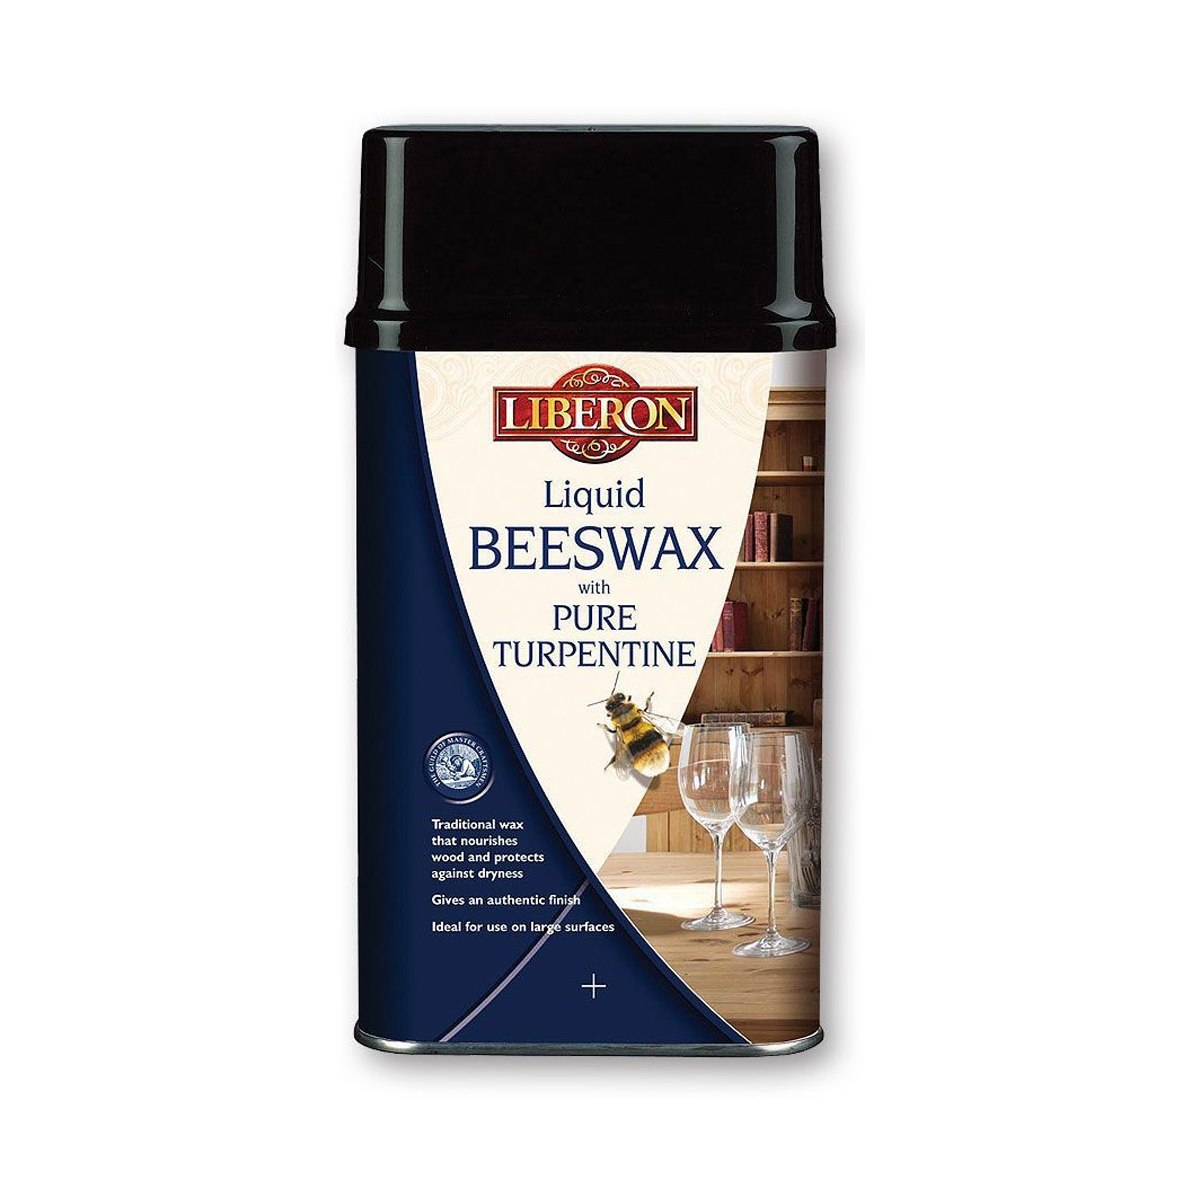 Liberon Liquid Beeswax with Pure Turpentine Antique Pine 1 Litre